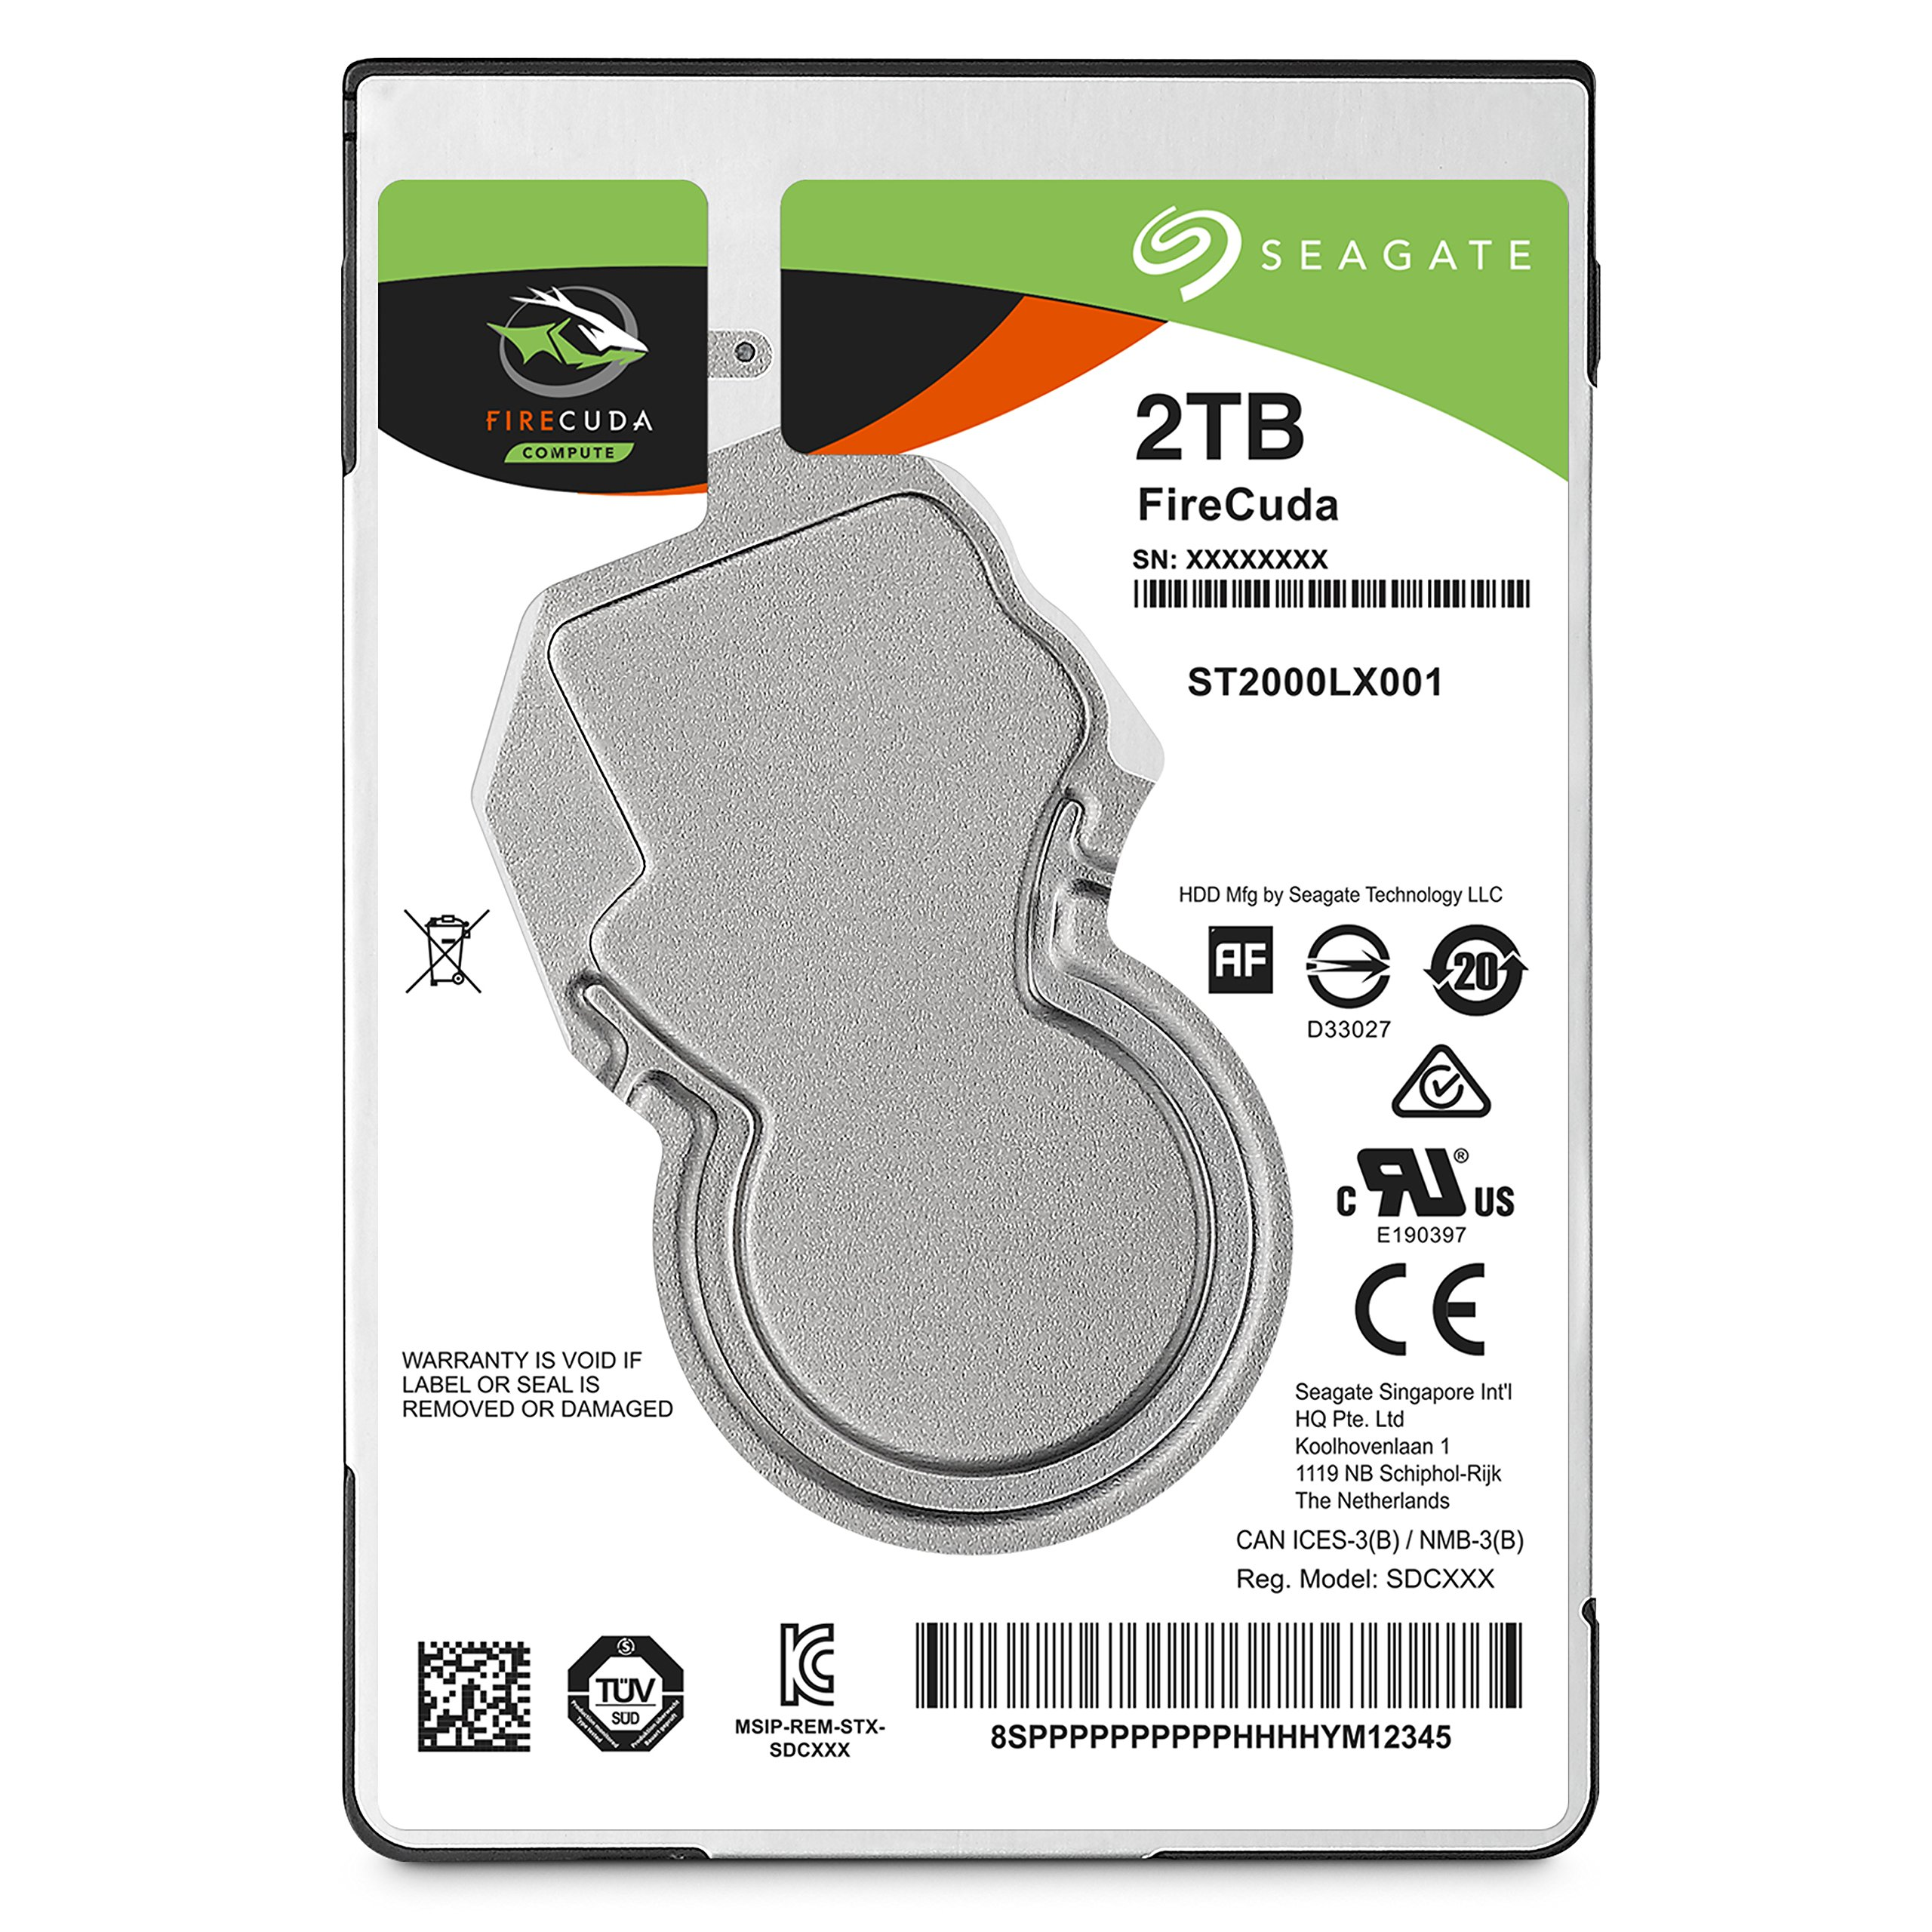 Seagate 2TB FireCuda Gaming SSHD SATA 6Gb/s 64MB Cache 2.5-Inch Hard Drive (ST2000LX001) by Seagate